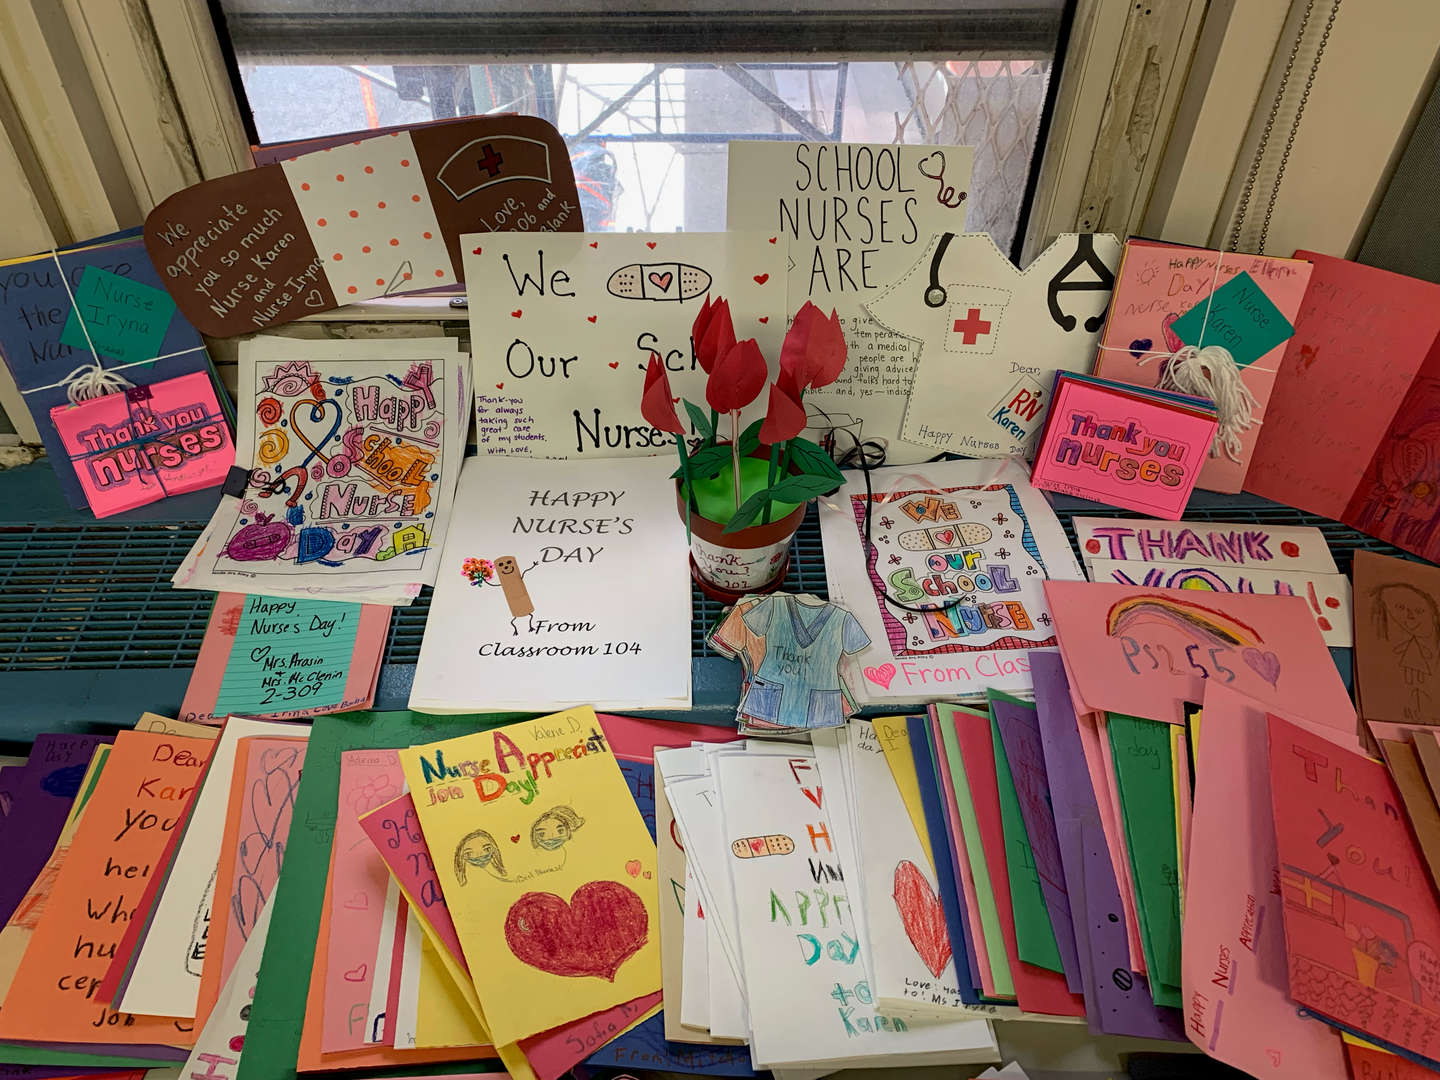 A display of thank you cards for nurses